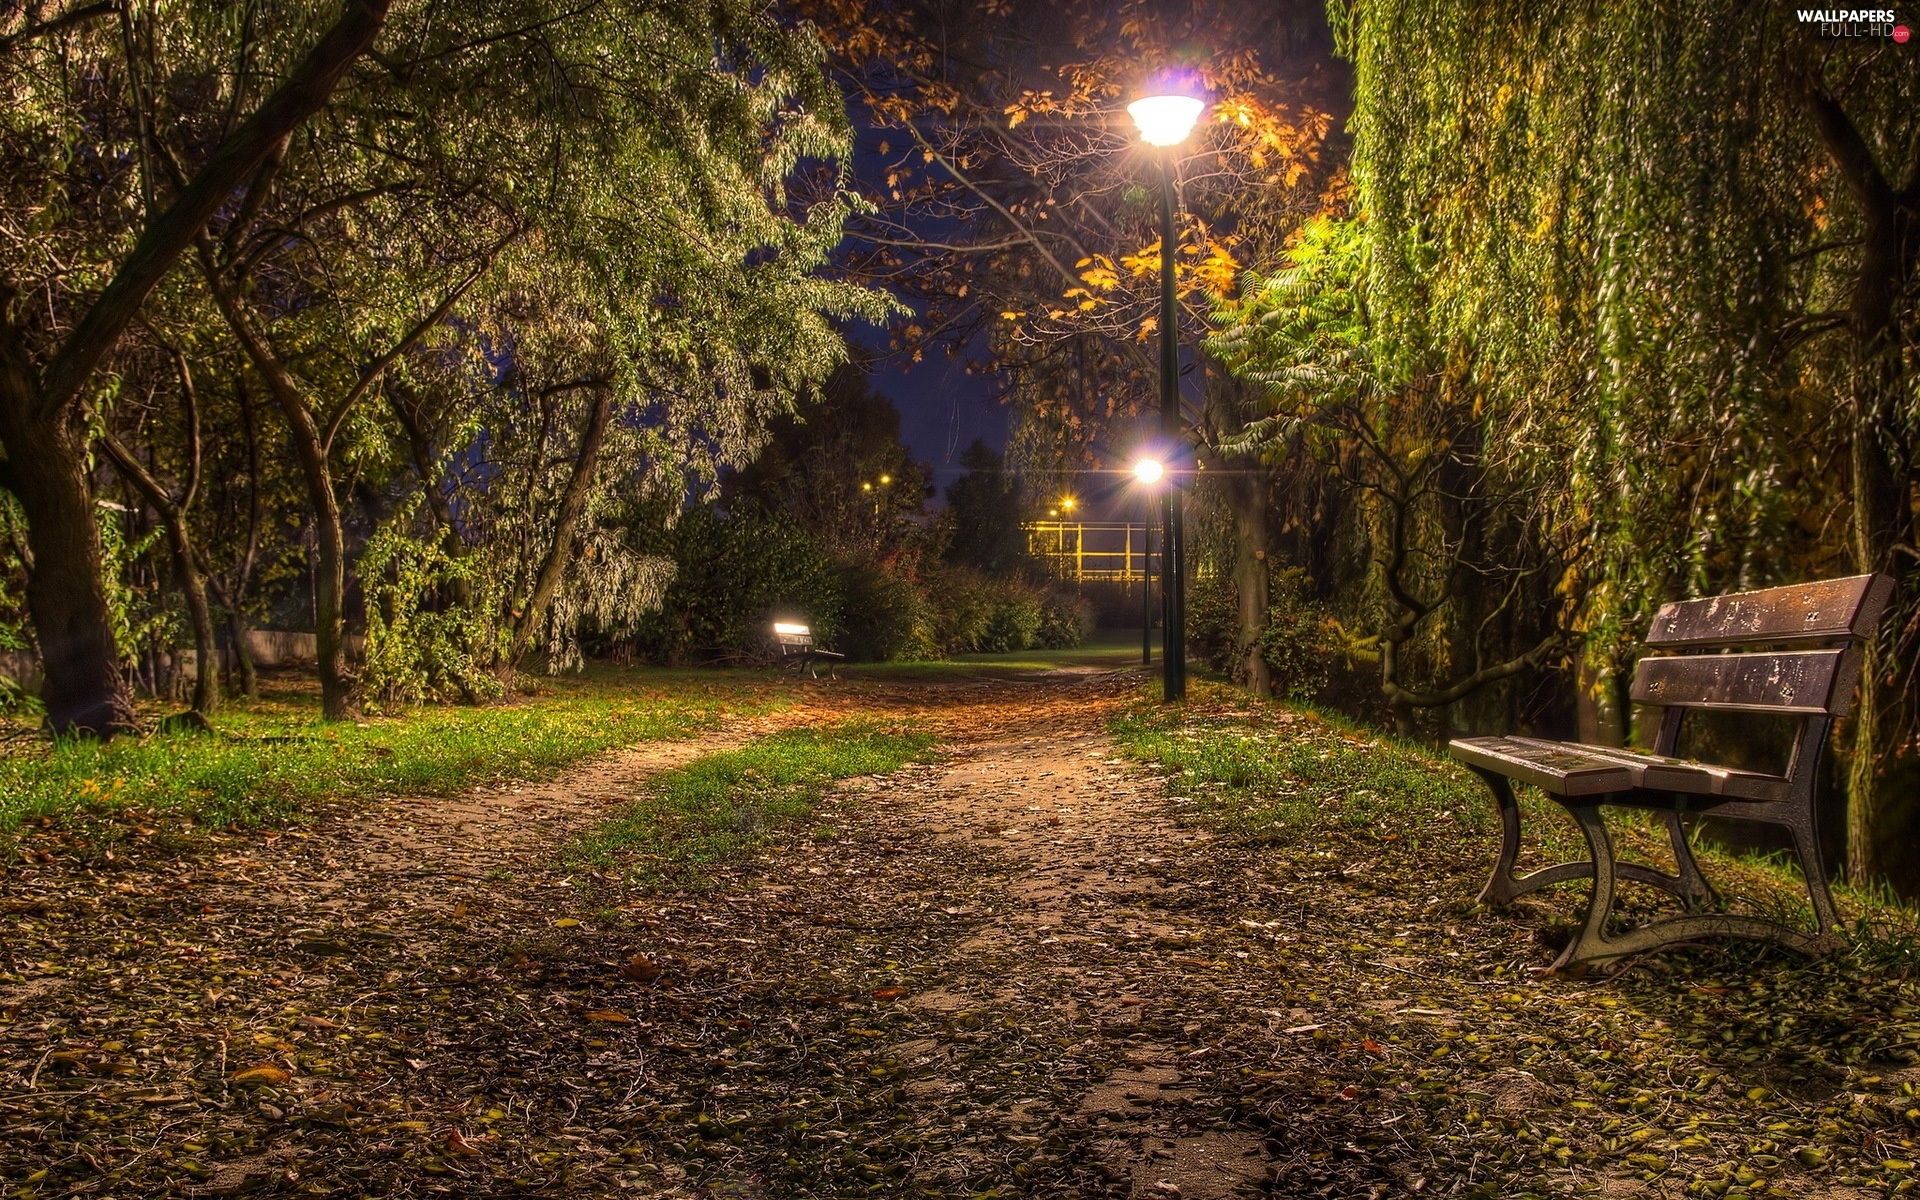 viewes, Bench, trees, Park, Lamps, evening